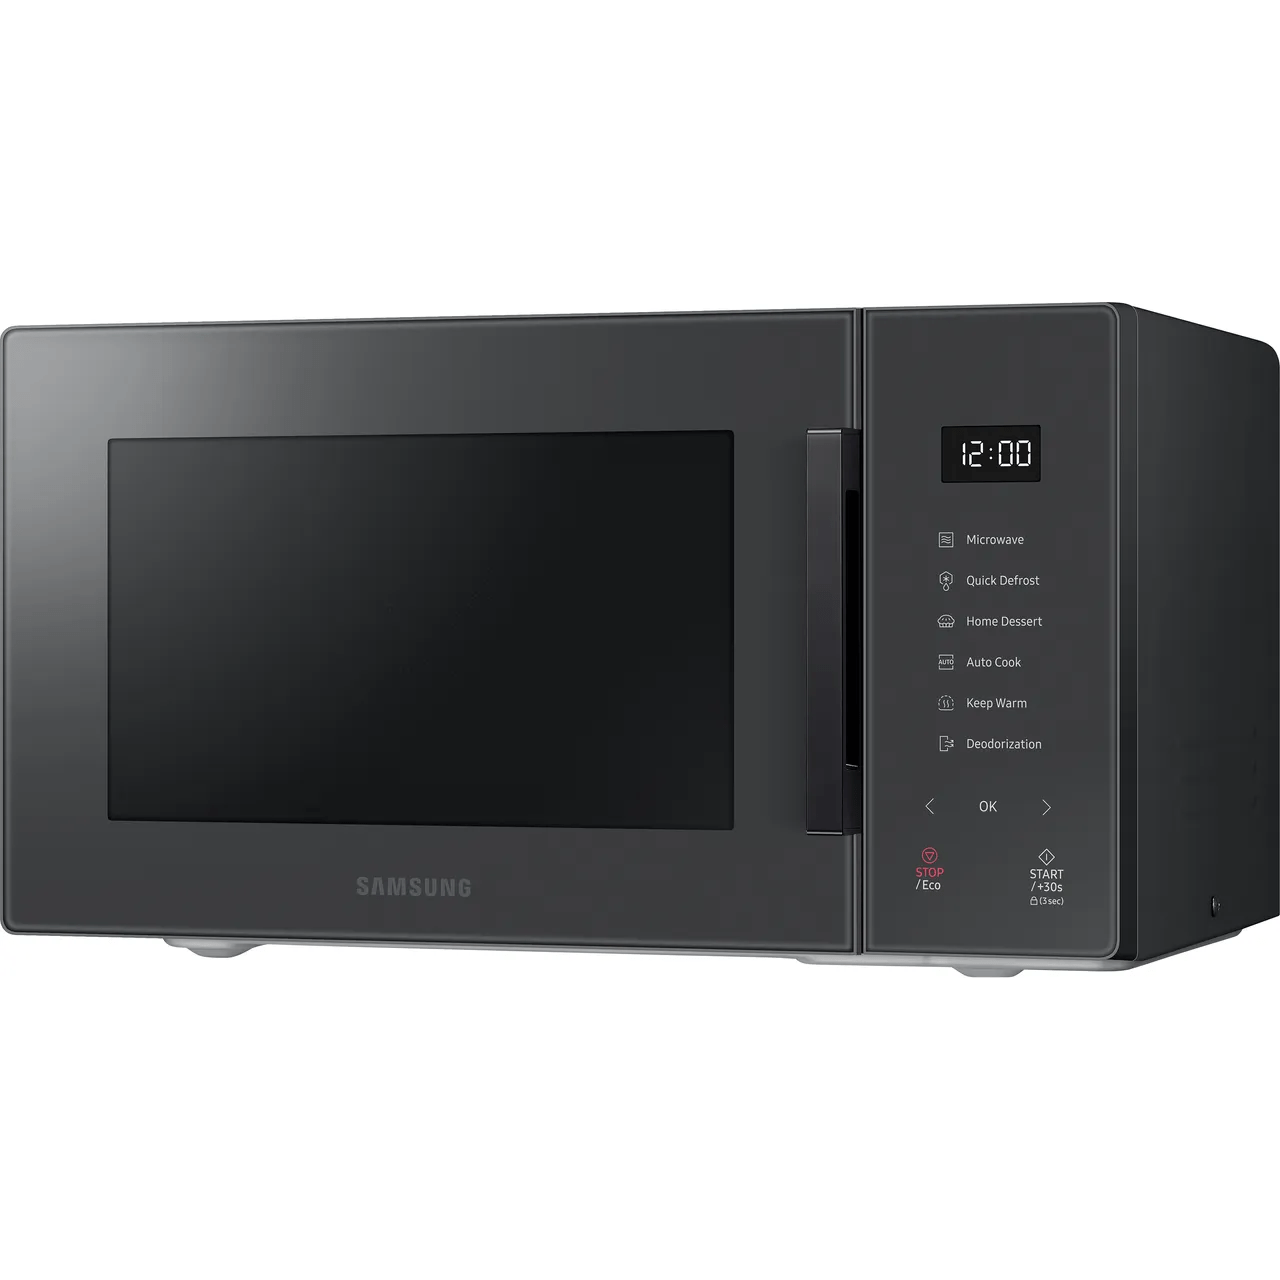 samsung mw5000t ms23t5018ac 23 litre microwave charcoal